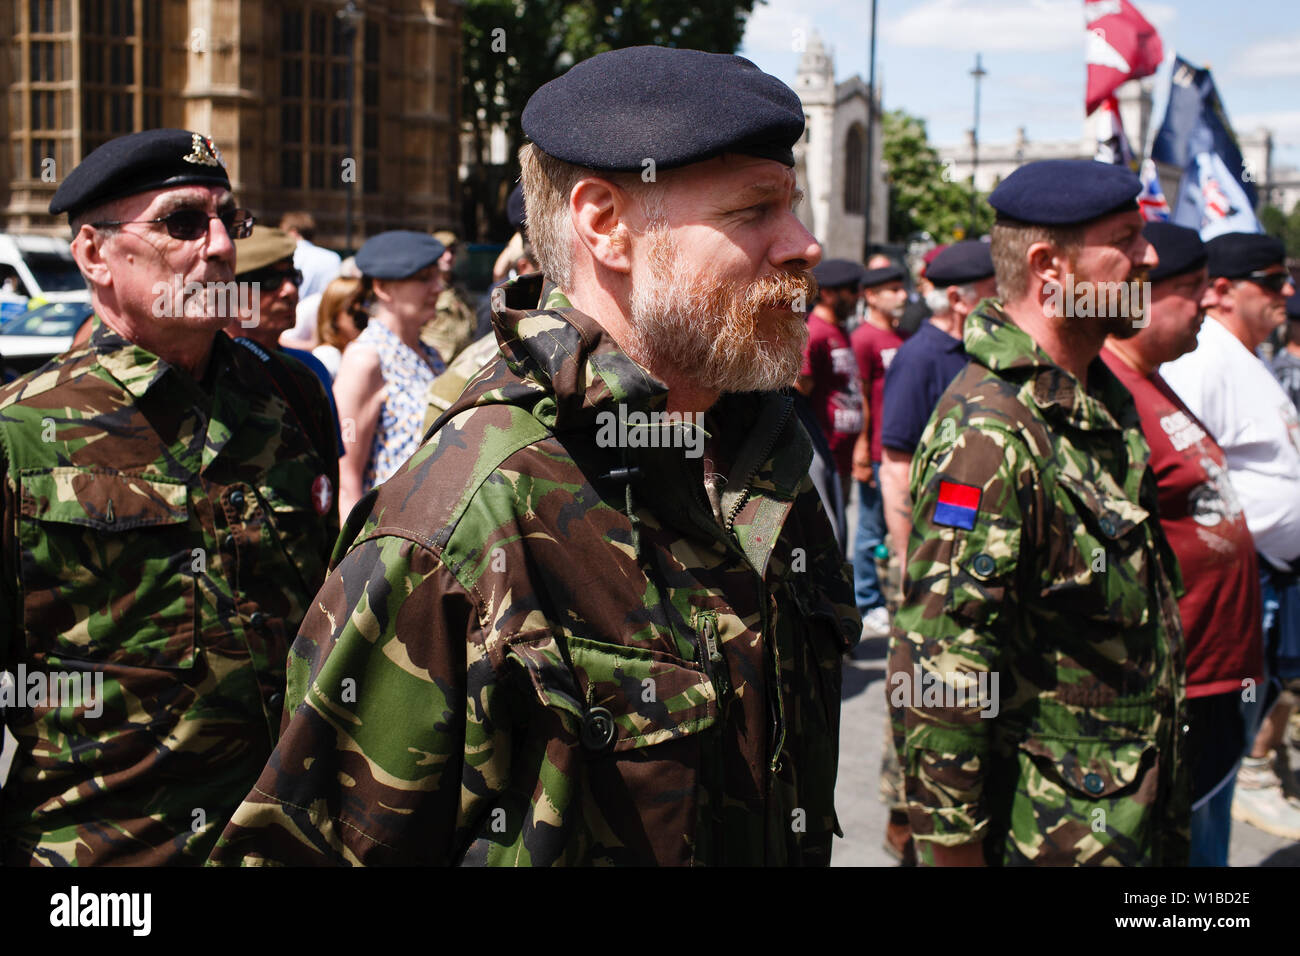 Veterans protesting the prosecution of former British soldiers for wartime killings stand in formation at a demonstration outside the Houses of Parliament. The demonstration centred on the ongoing case of the as-yet-unnamed 'Soldier F', charged with two counts of murder for killings on Bloody Sunday in Londonderry, Northern Ireland, in 1972. - Stock Image